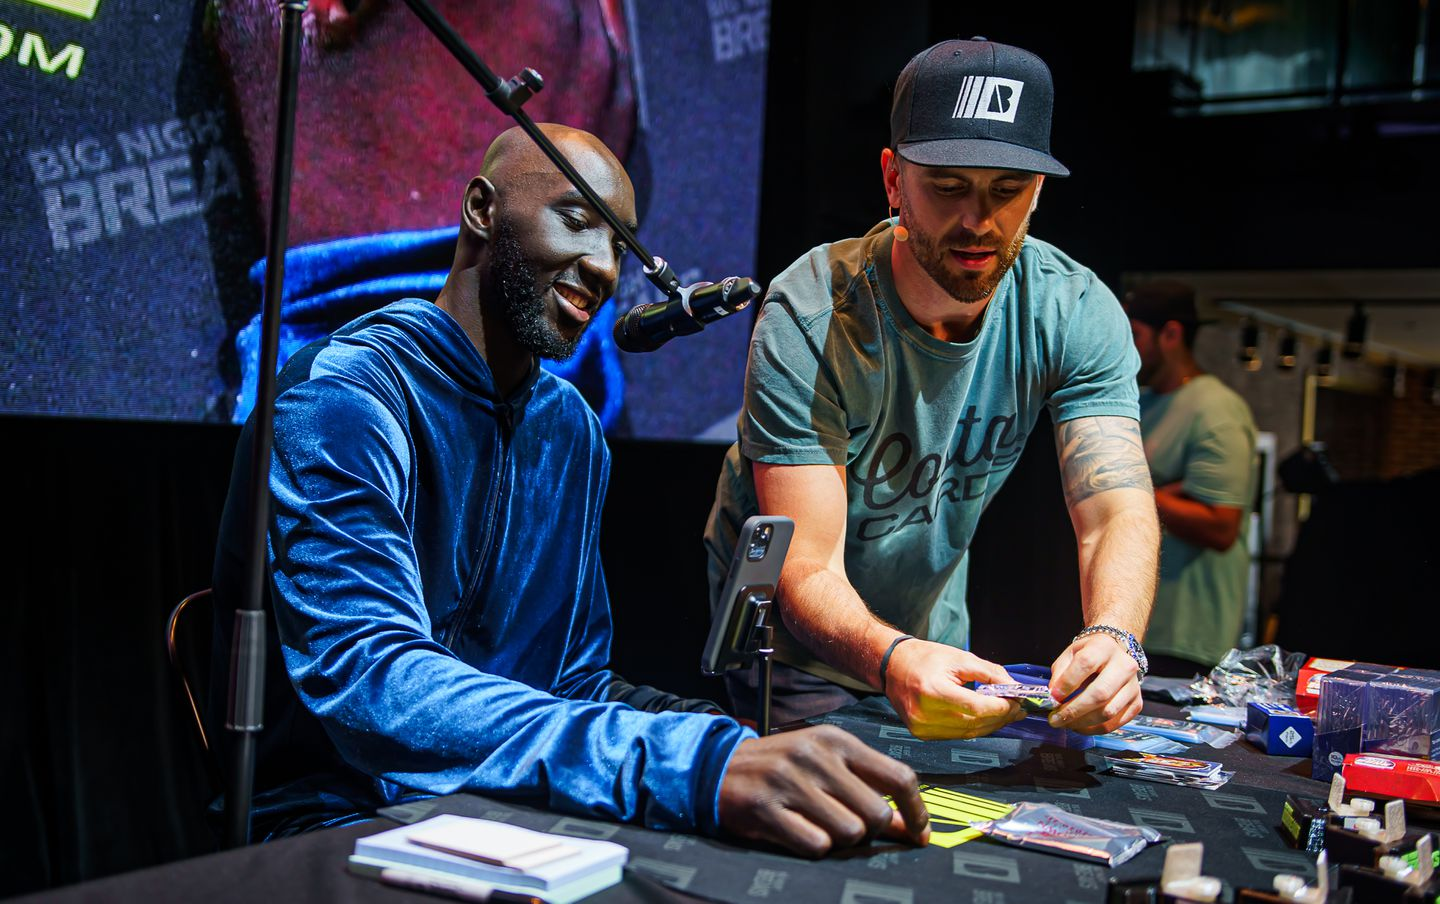 """Celtics fan favorite Tacko Fall """"ripped"""" packs at the Causeway Card Show with Chris Costa, one of the organizers."""